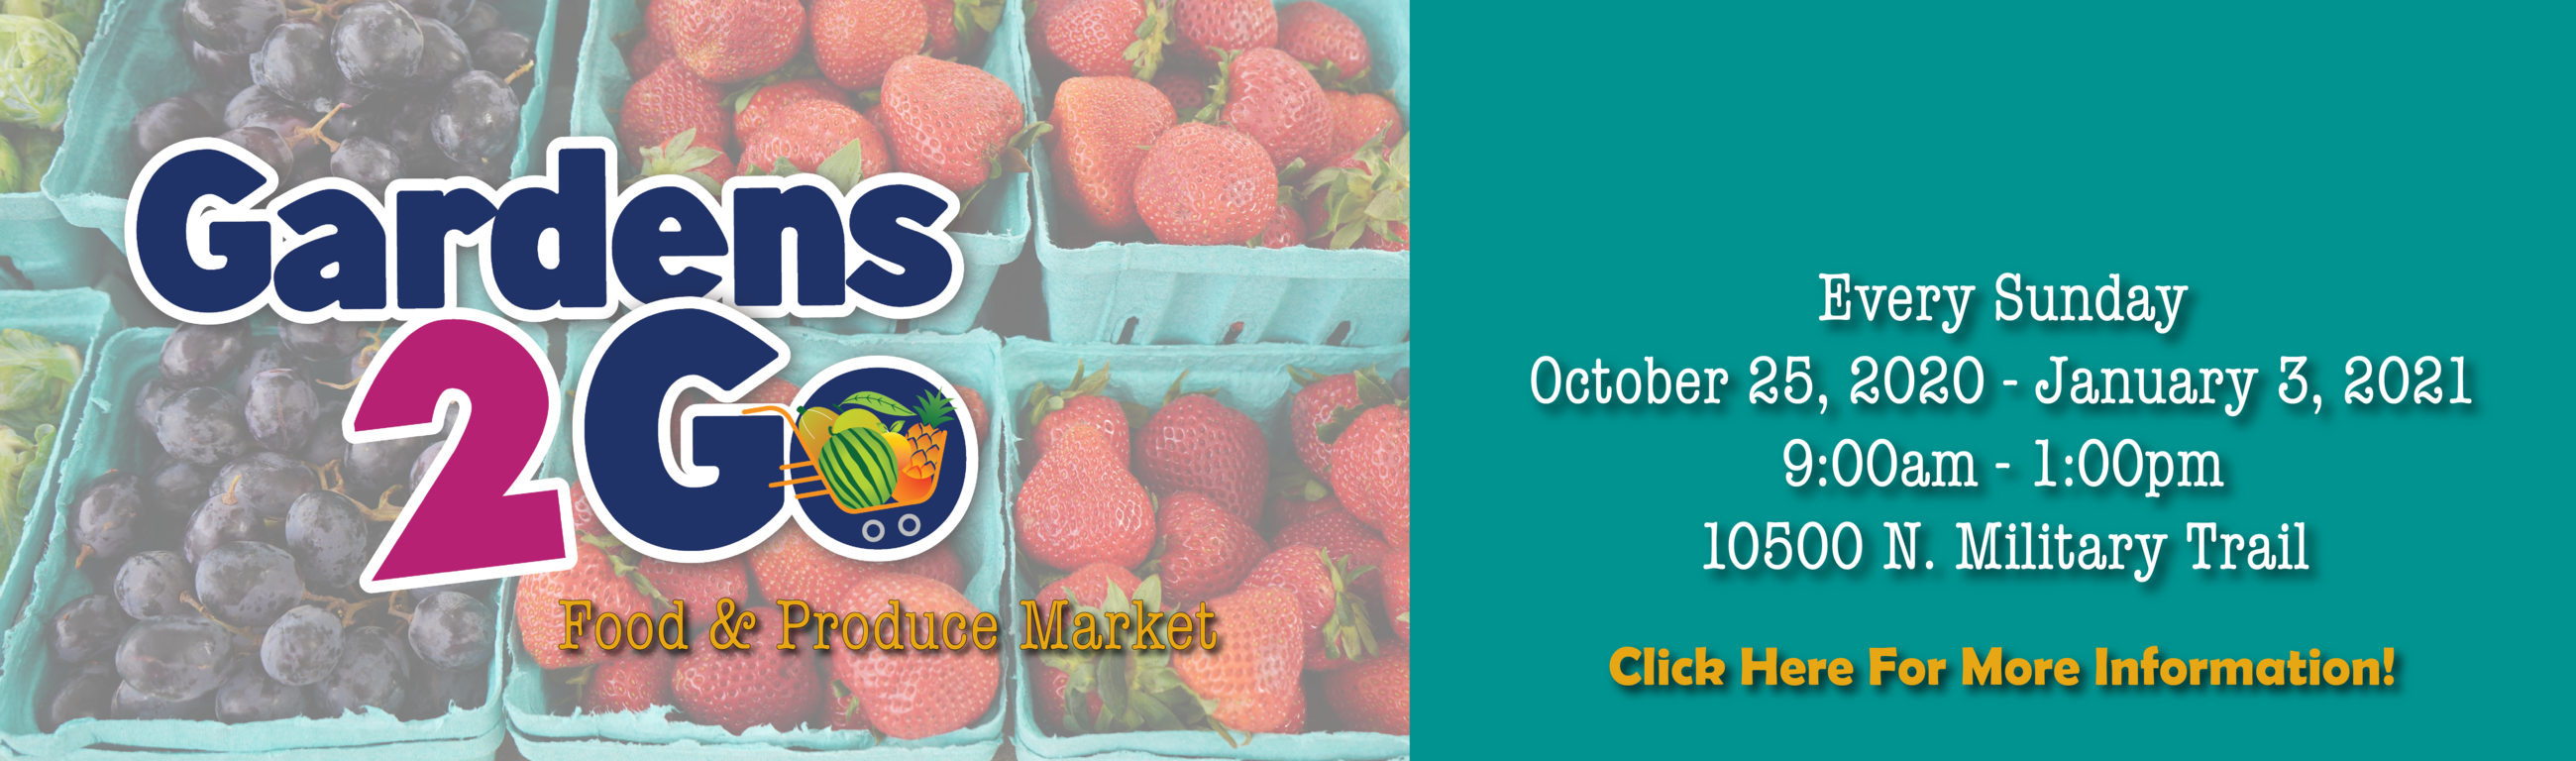 Gardens 2 Go Food and Produce Market begins October 25th.